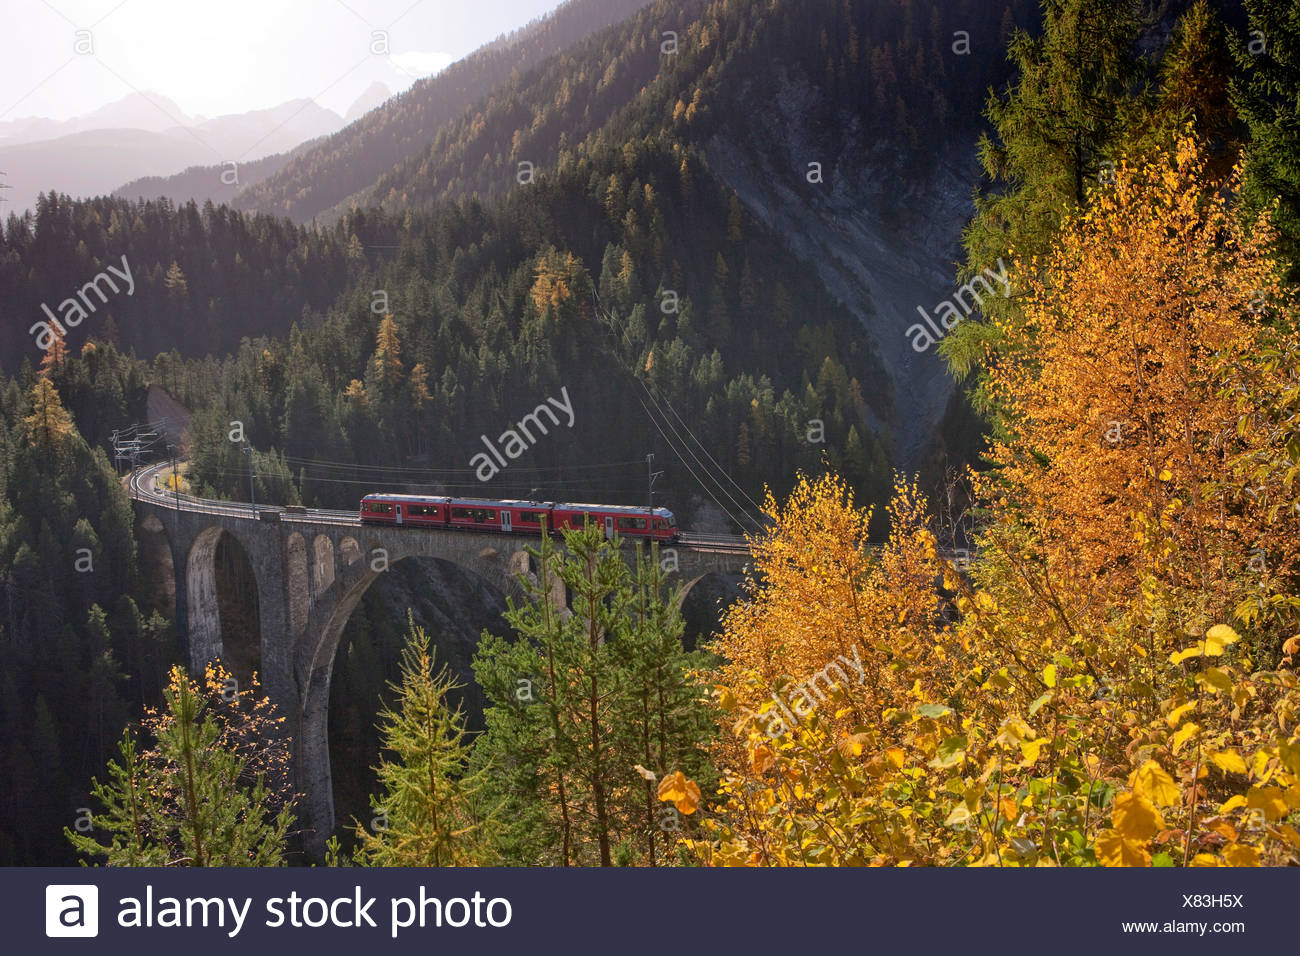 Rhaetian Railway, meadow viaduct, meadows, road, railway, train, railroad, bridge, autumn, wood, forest, canton, GR, Graubünden, - Stock Image